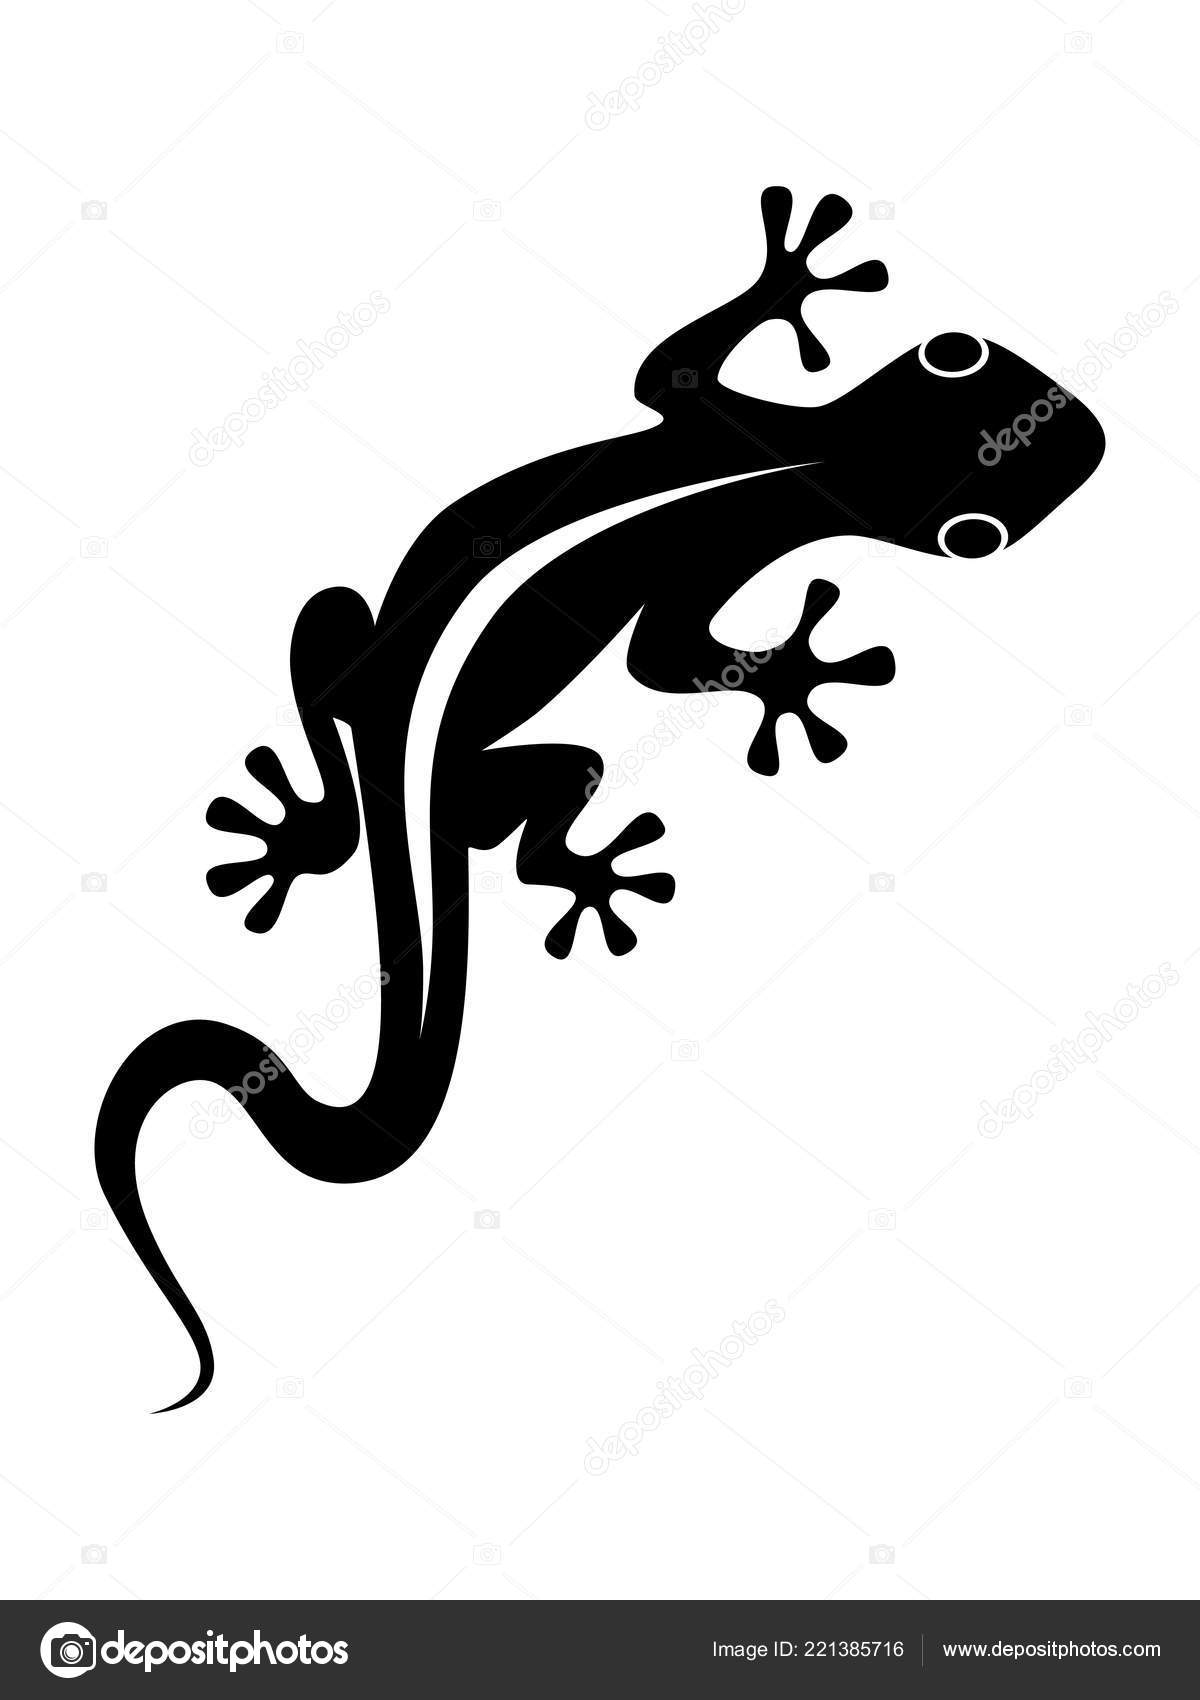 5908618d8 Abstract black symbol or sign lizard isolated on white background. Flat  icon vector illustration– stock illustration